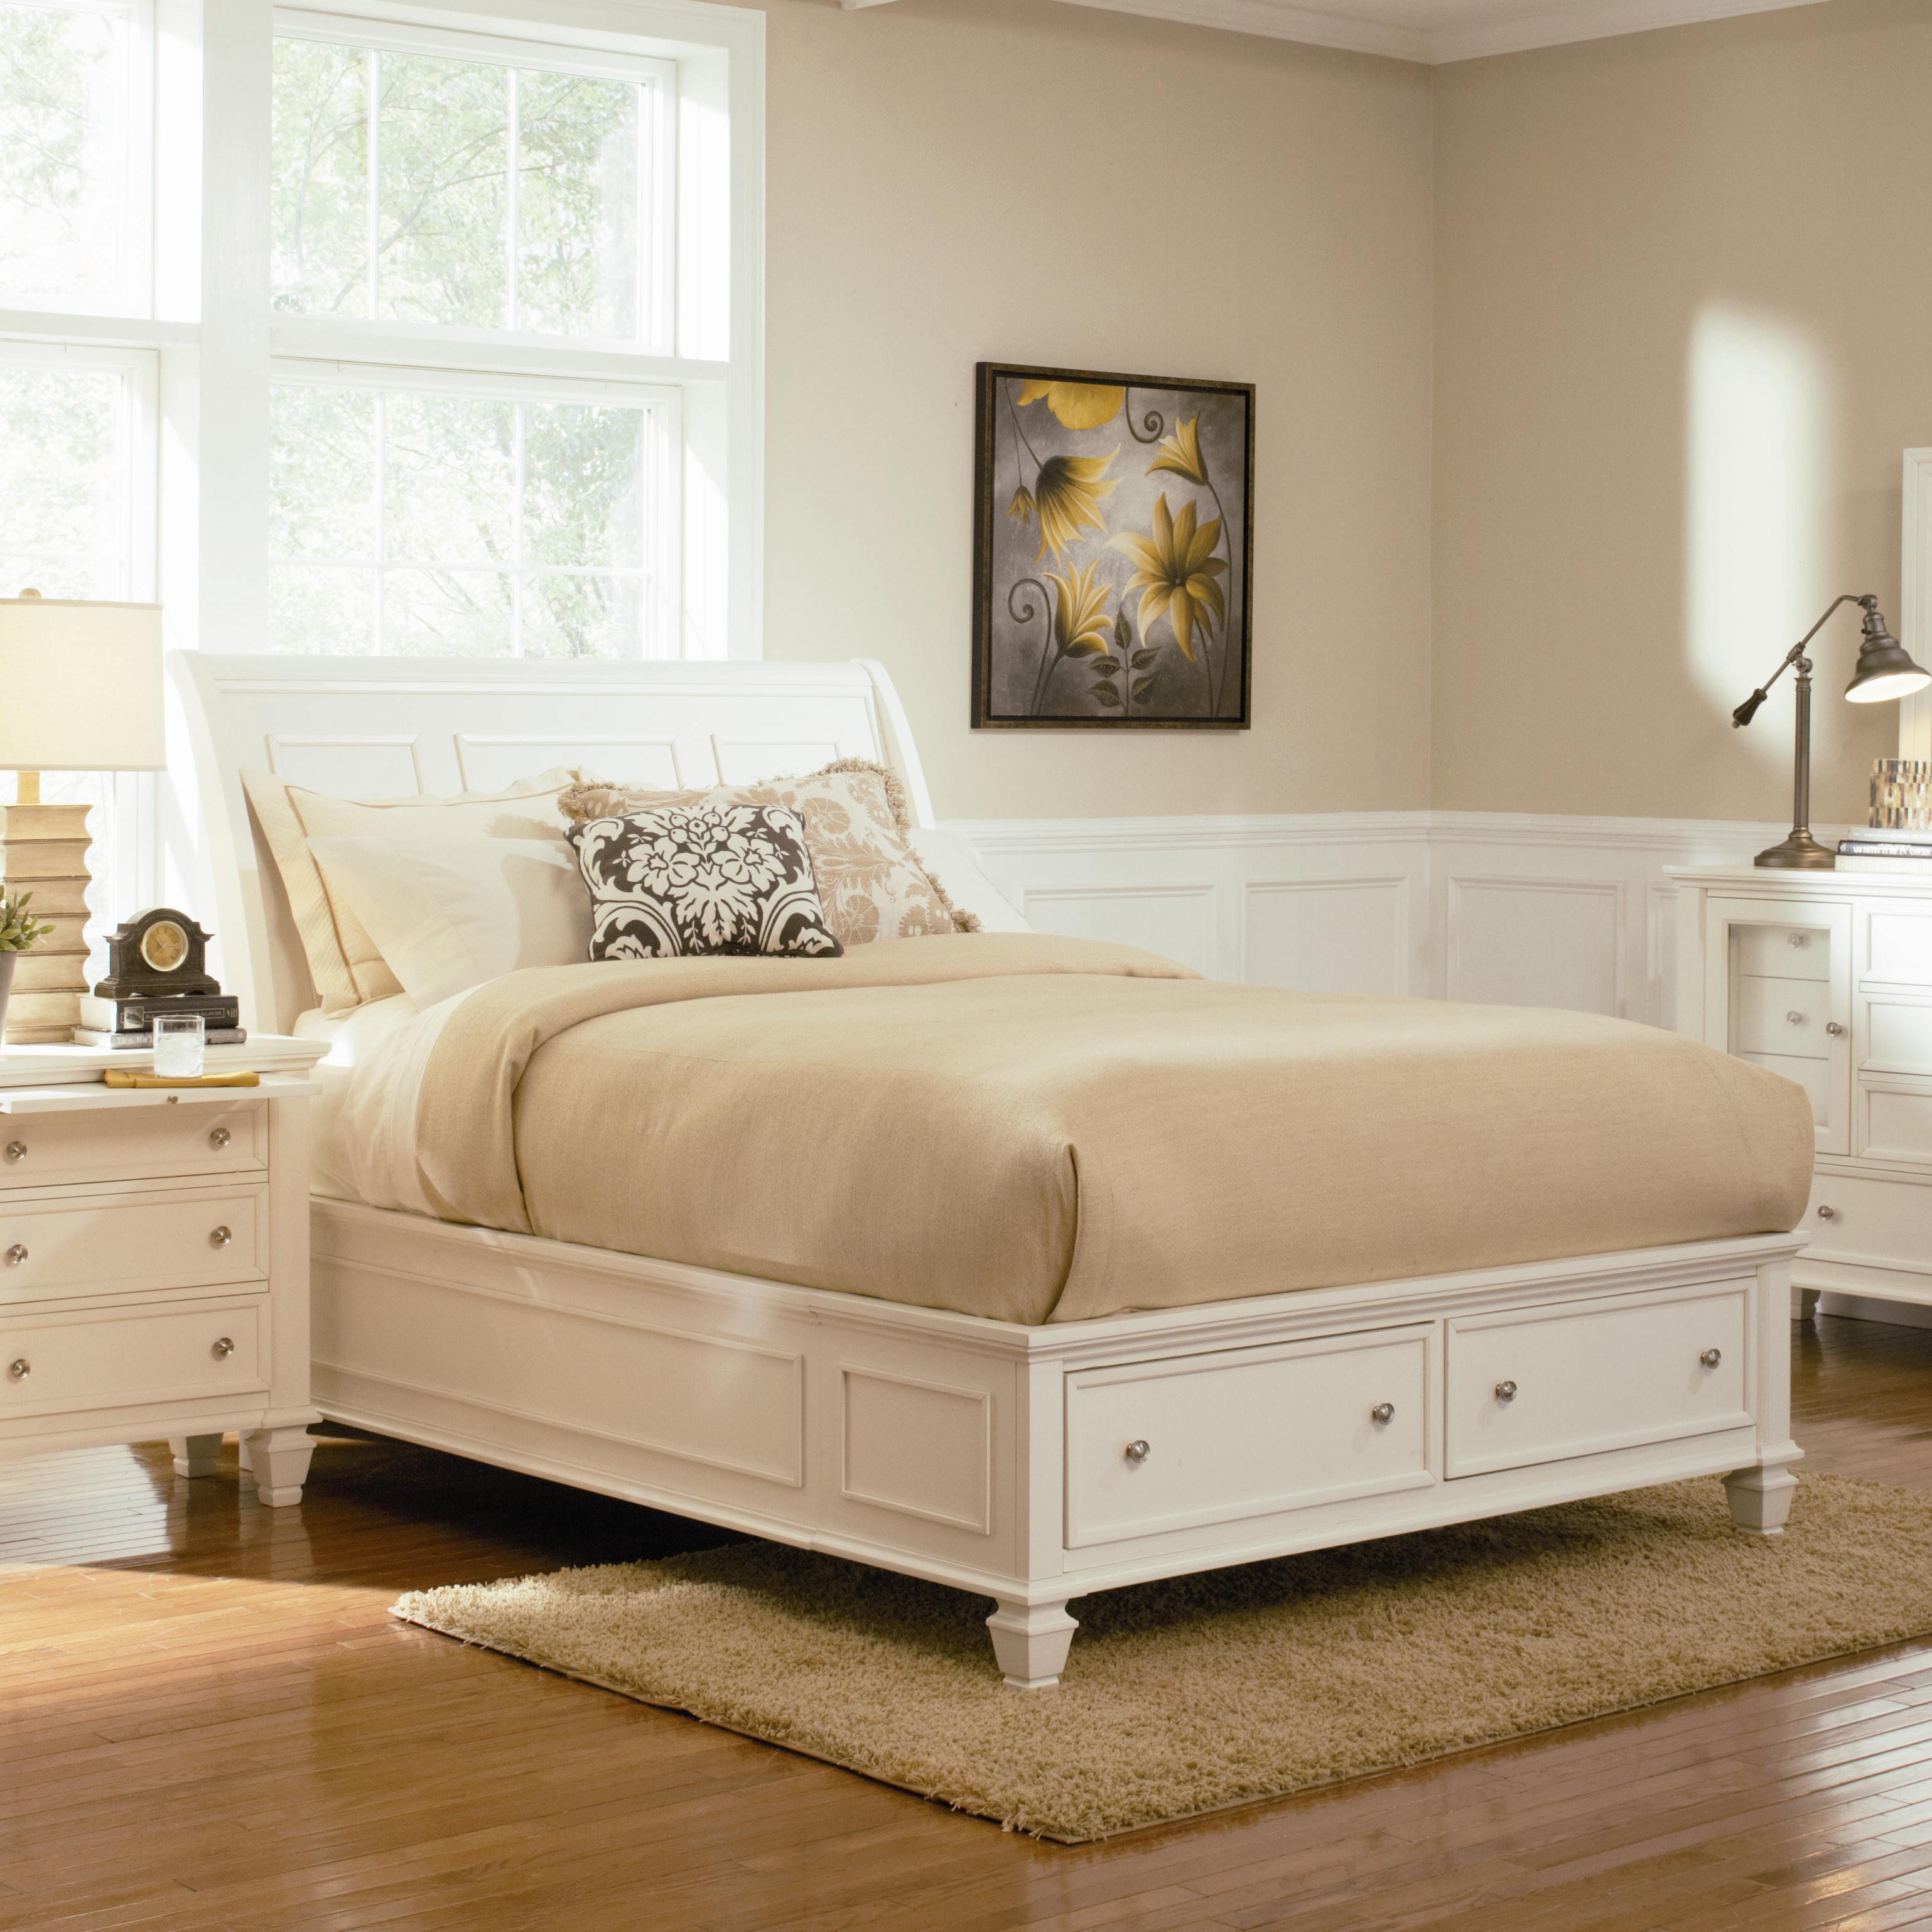 Sandy Beach King Sleigh Bed by Coaster at Furniture Superstore - Rochester, MN